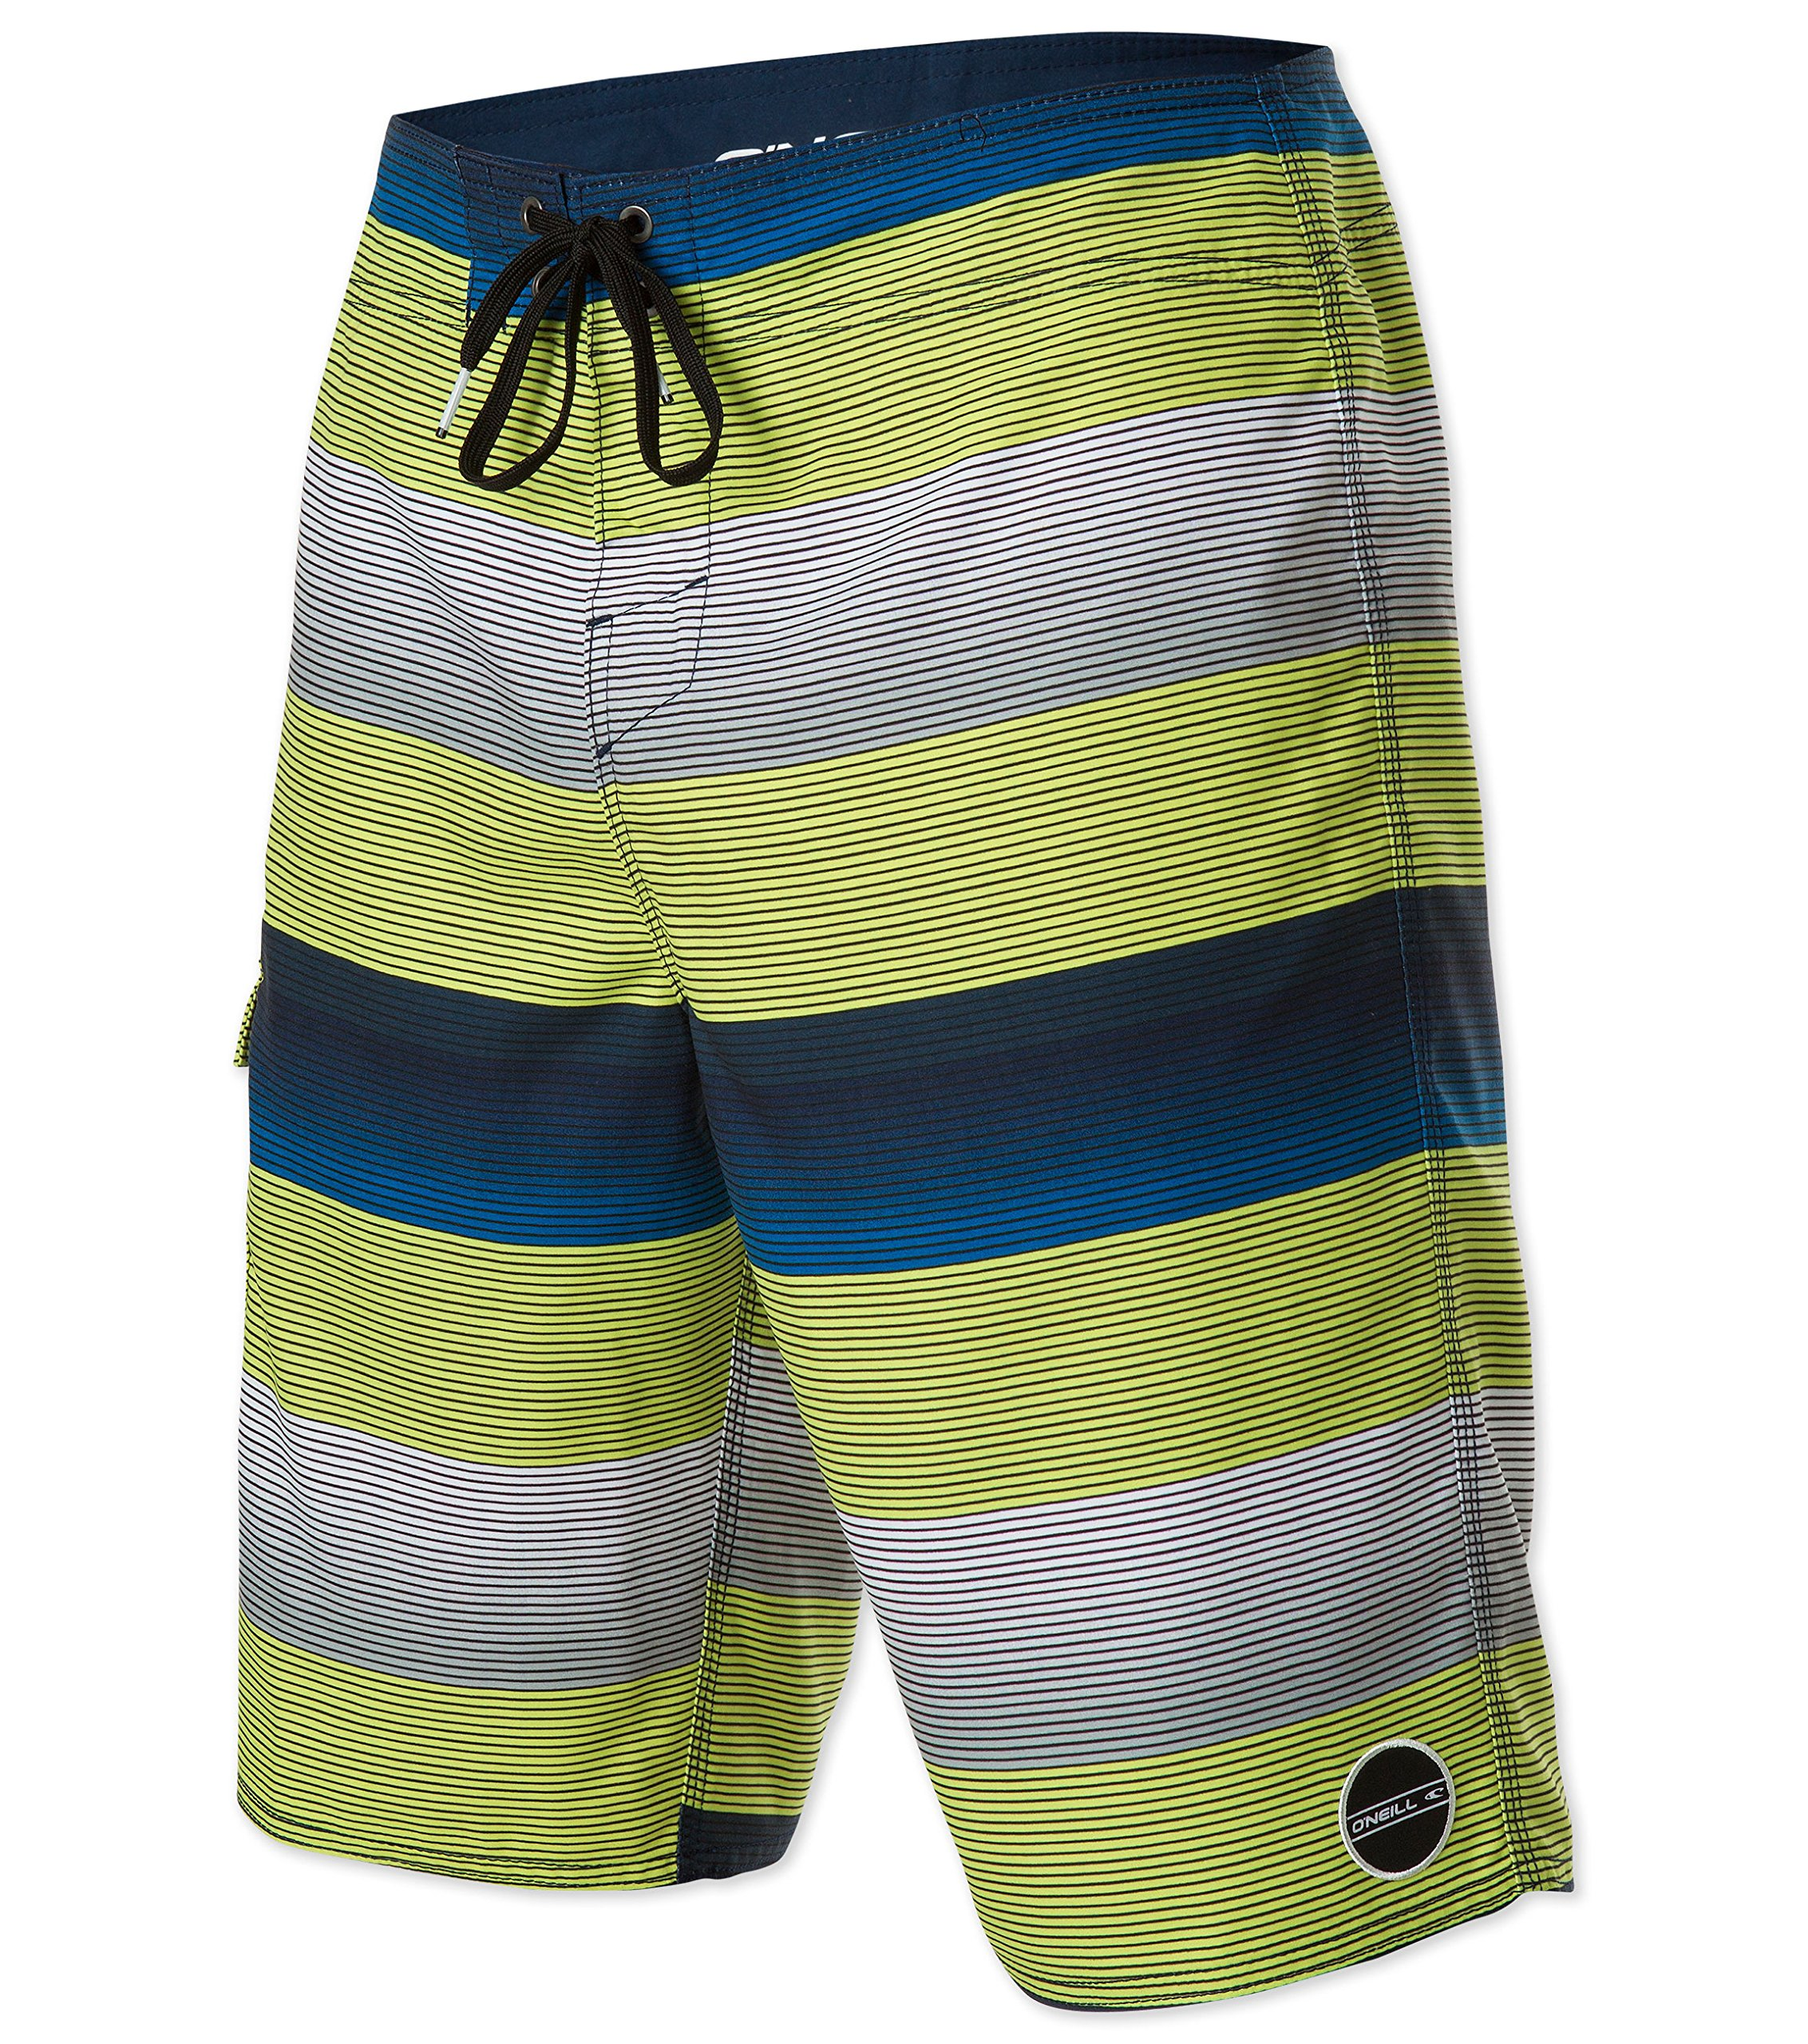 O'Neill Men's Catalina Stripe Boardshort, NYL - 30